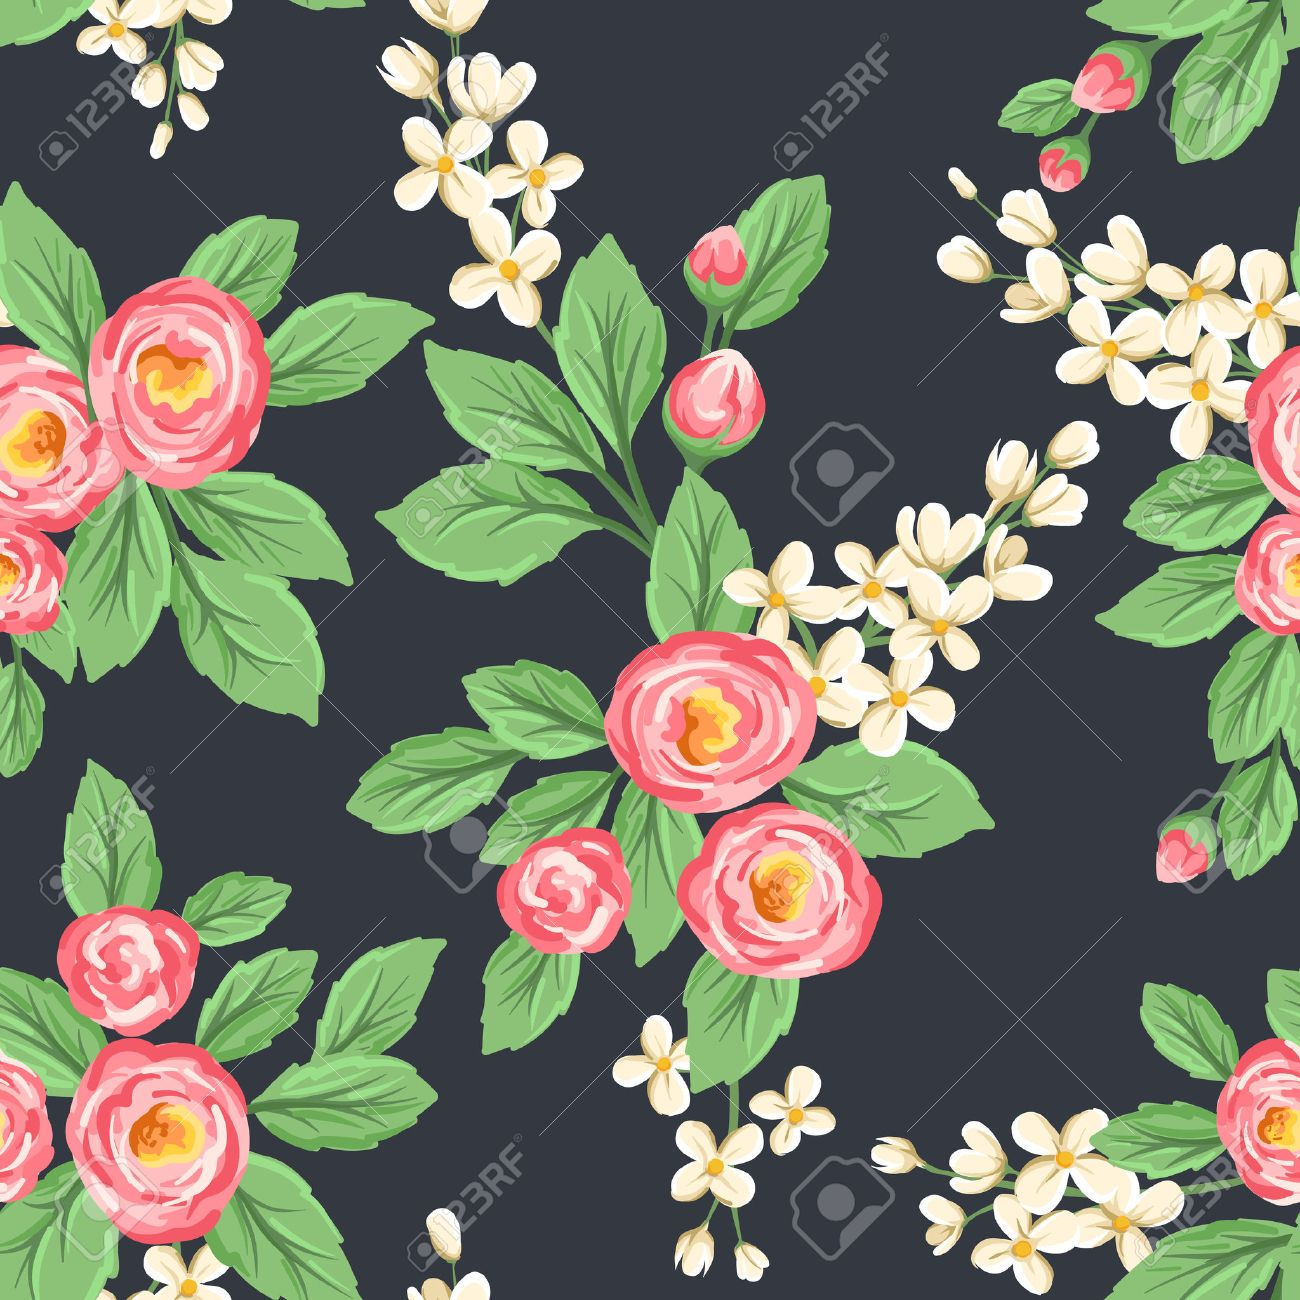 Floral Seamless Pattern With Pink Roses And Small White Flowers On